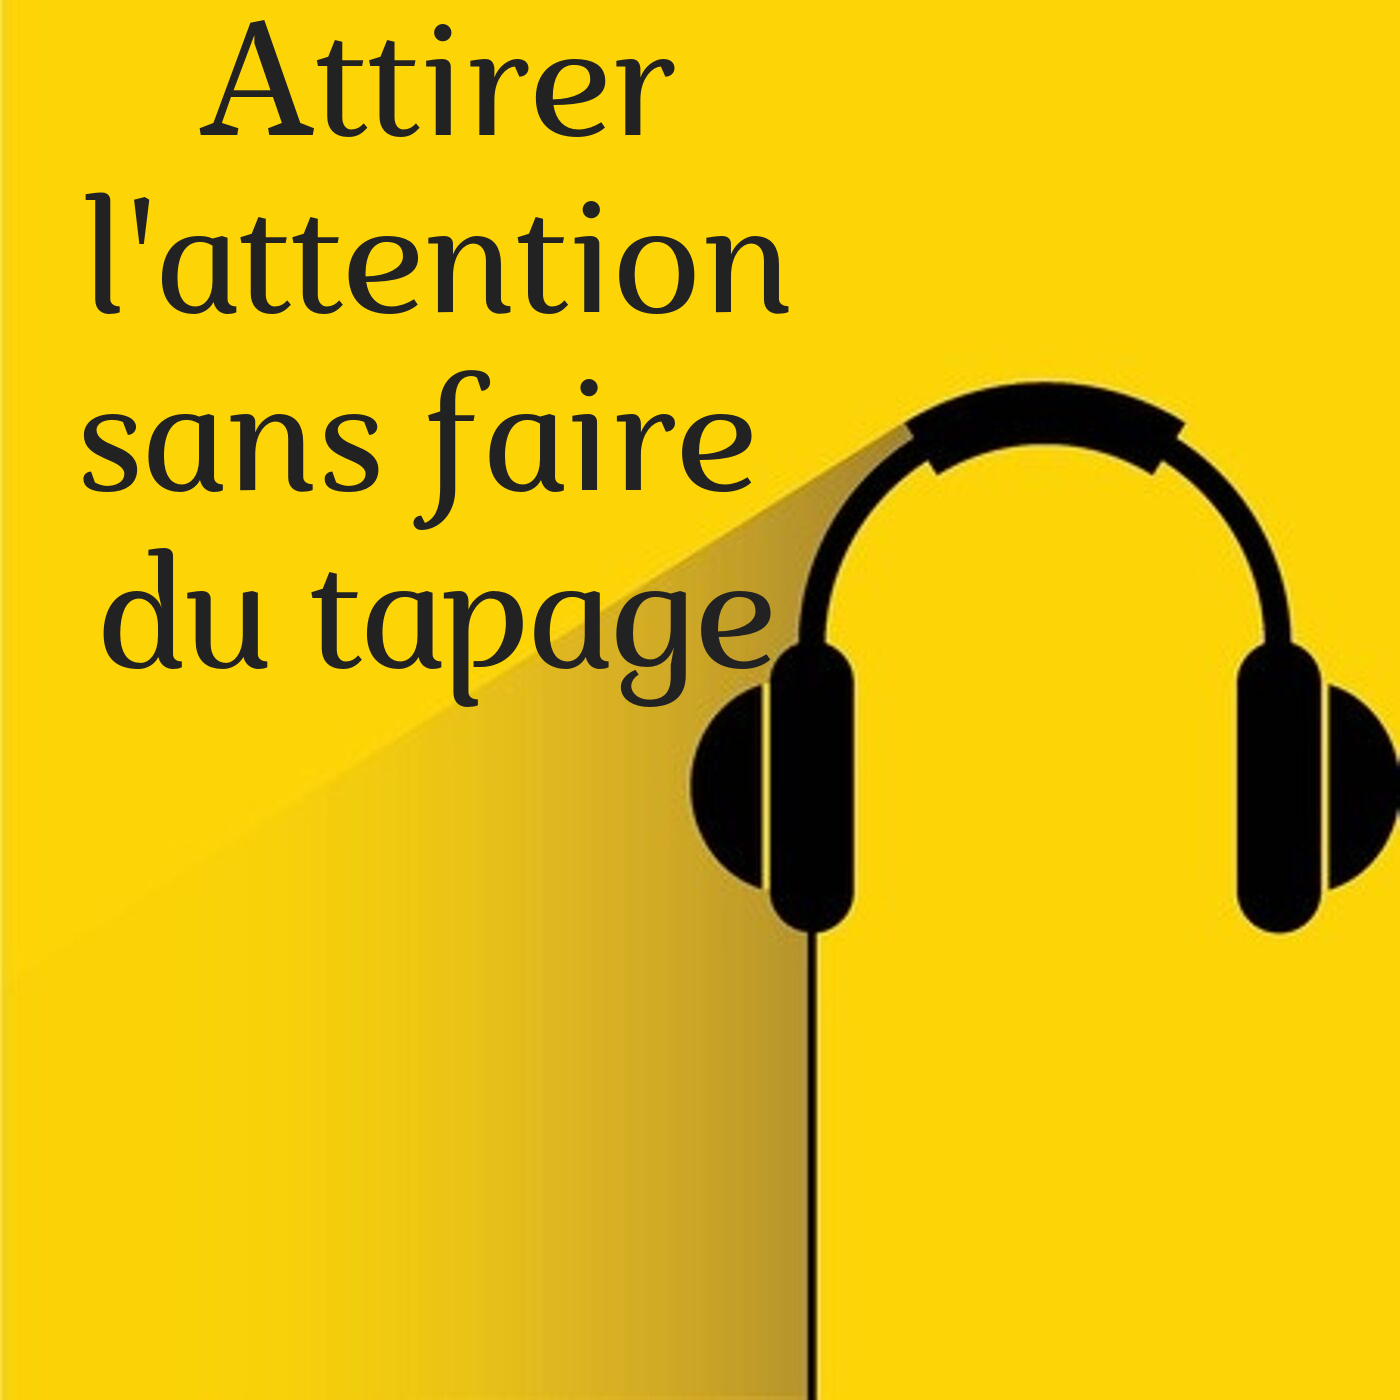 Comment attirer l'attention sans faire de tapage